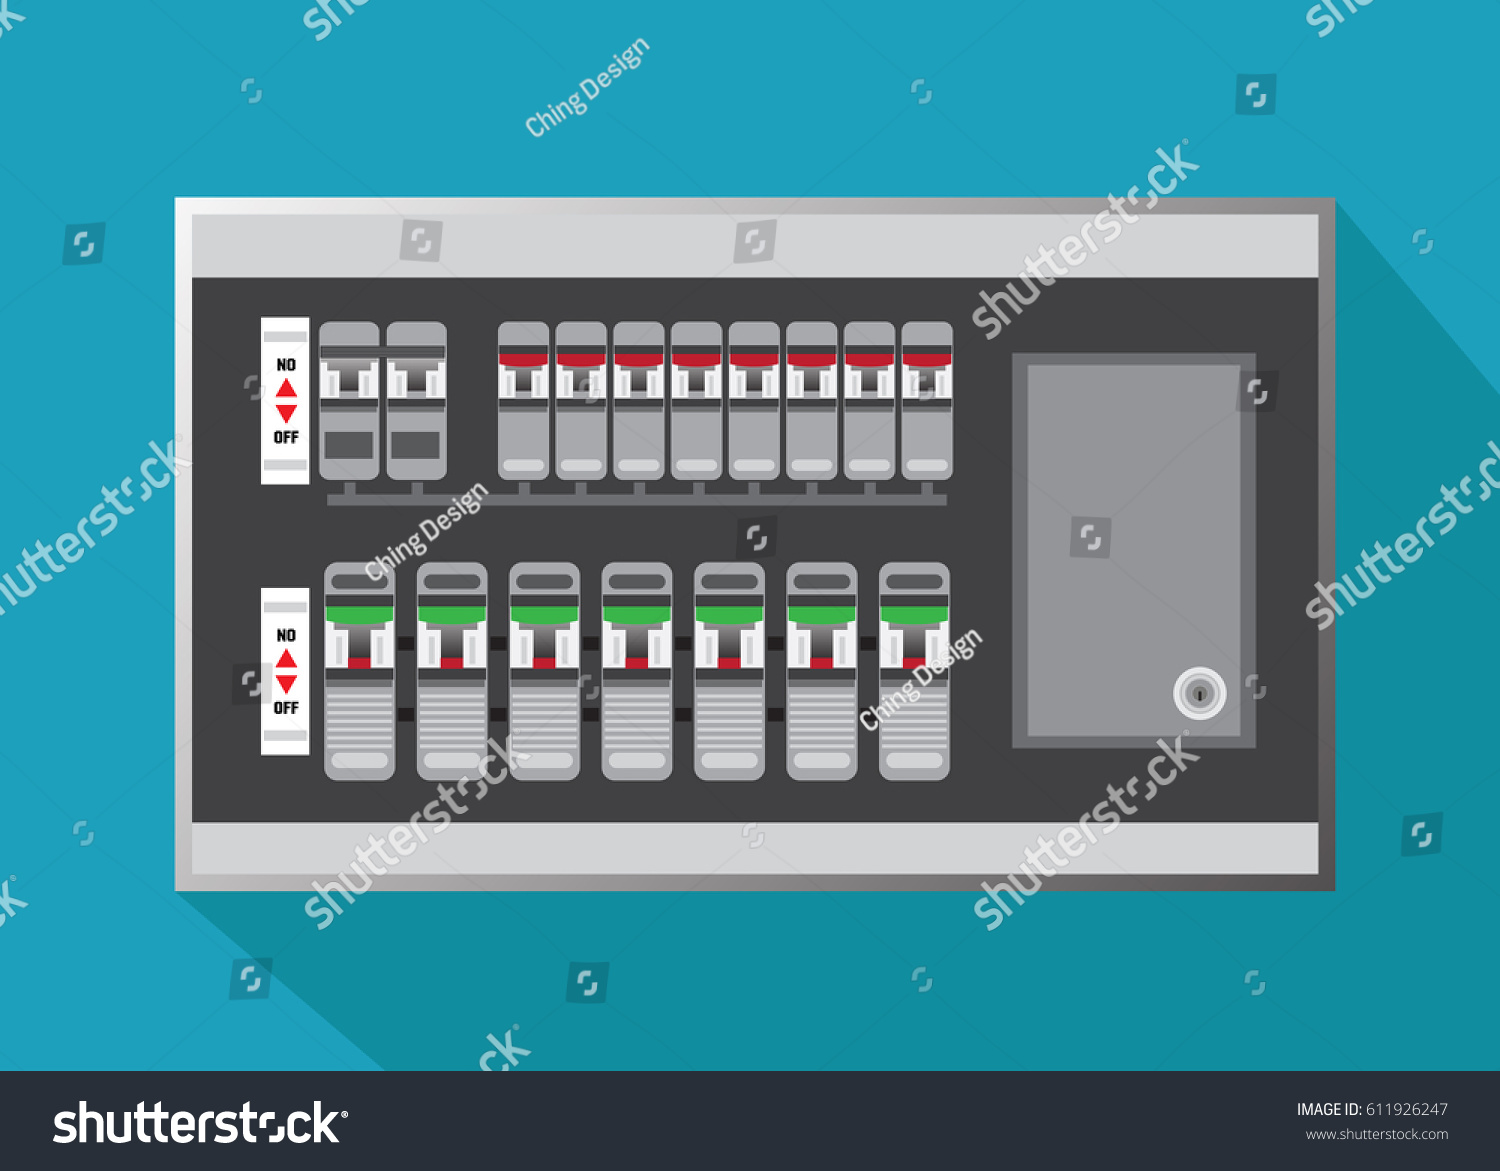 Electrical Panel Switch On Off Breakers Vector Stock Photo (Photo ...